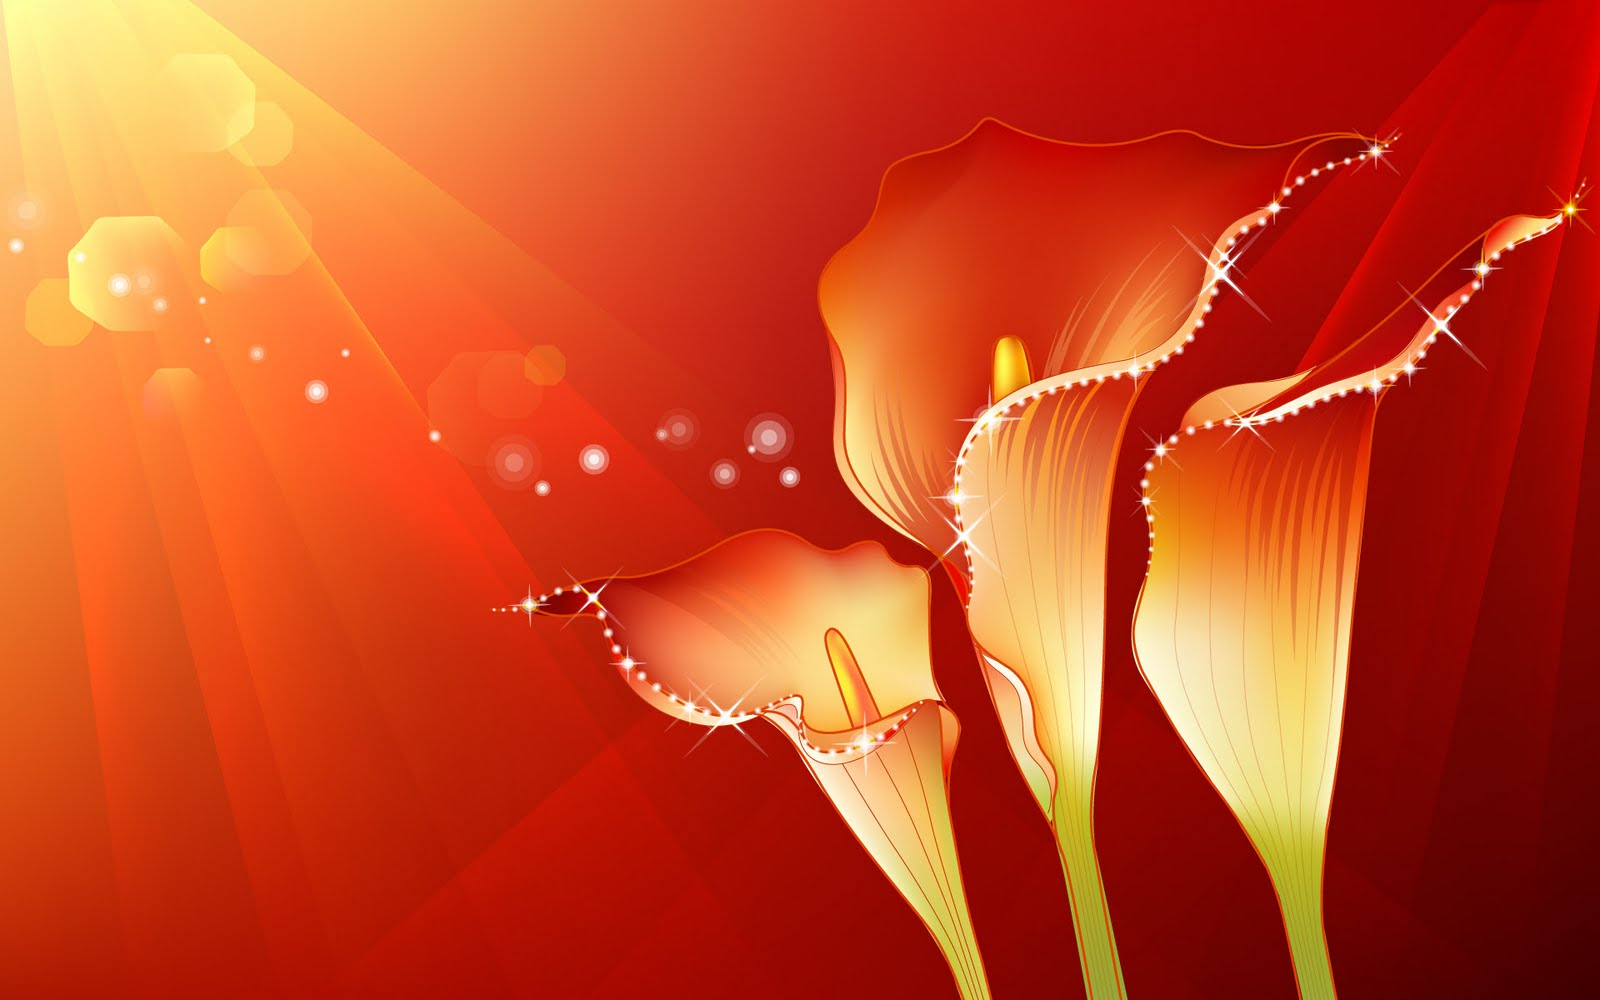 17 Red Abstract Flower Design Images